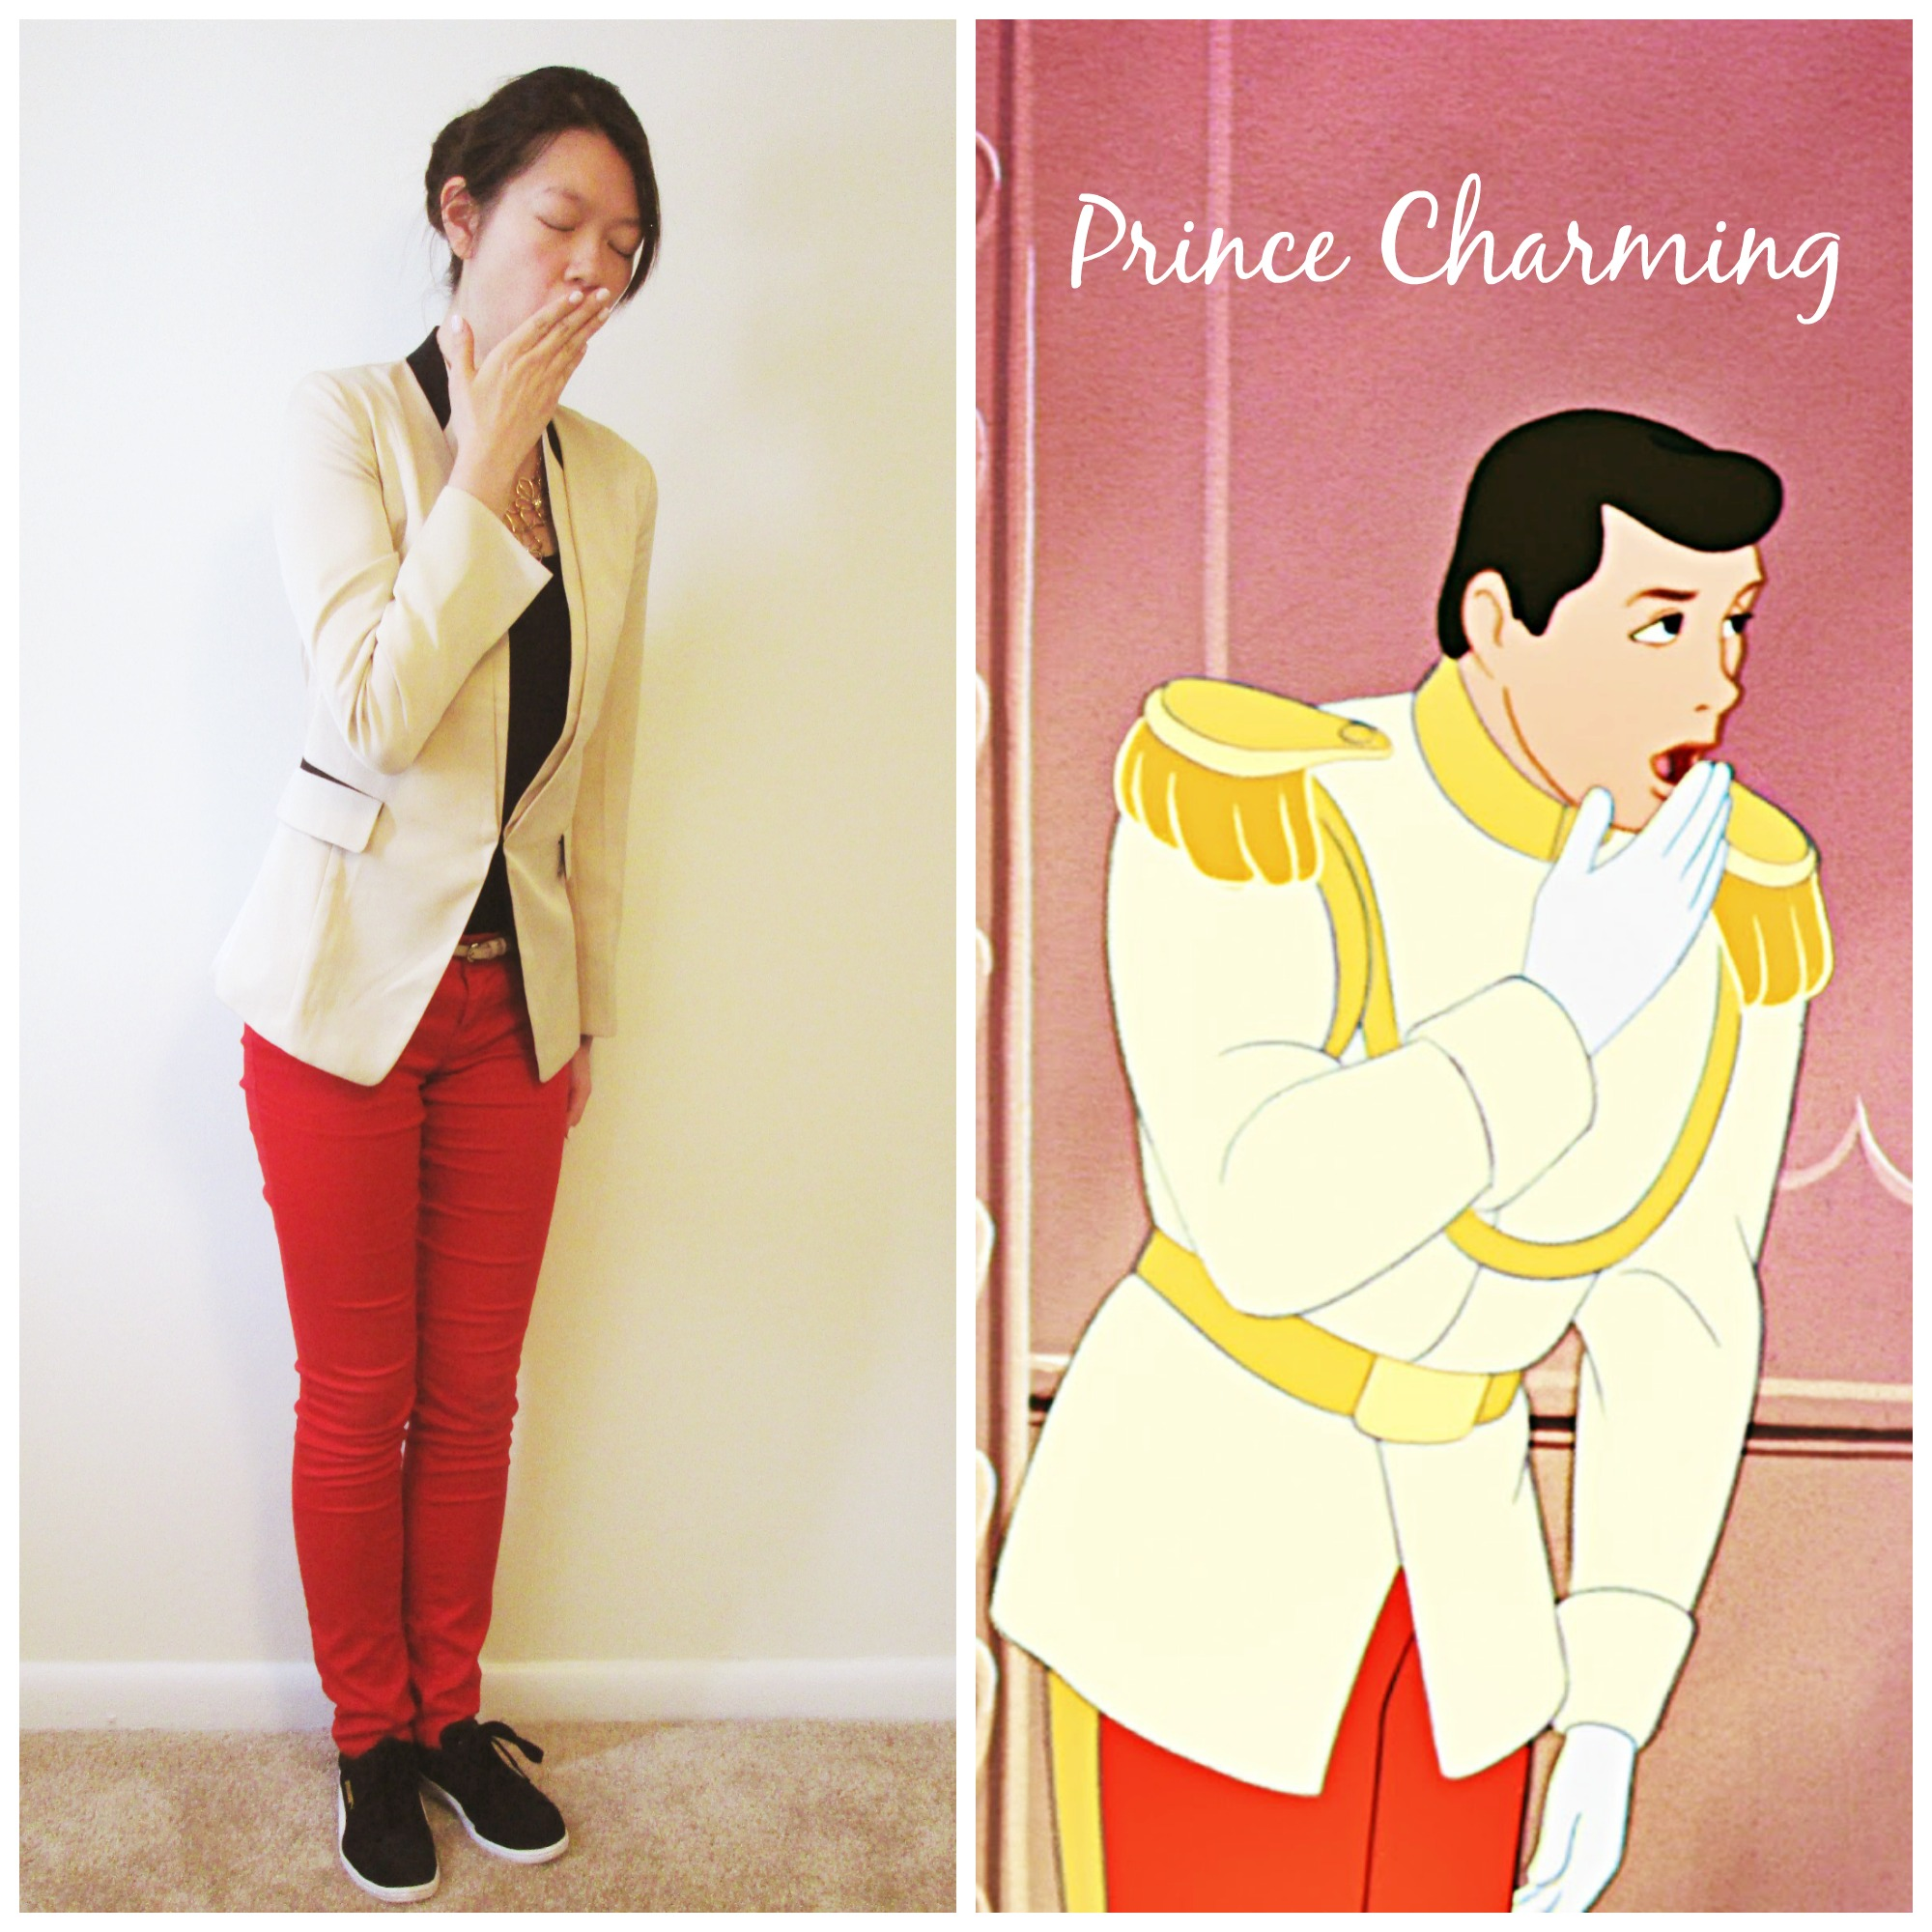 Bored Prince Charming at The